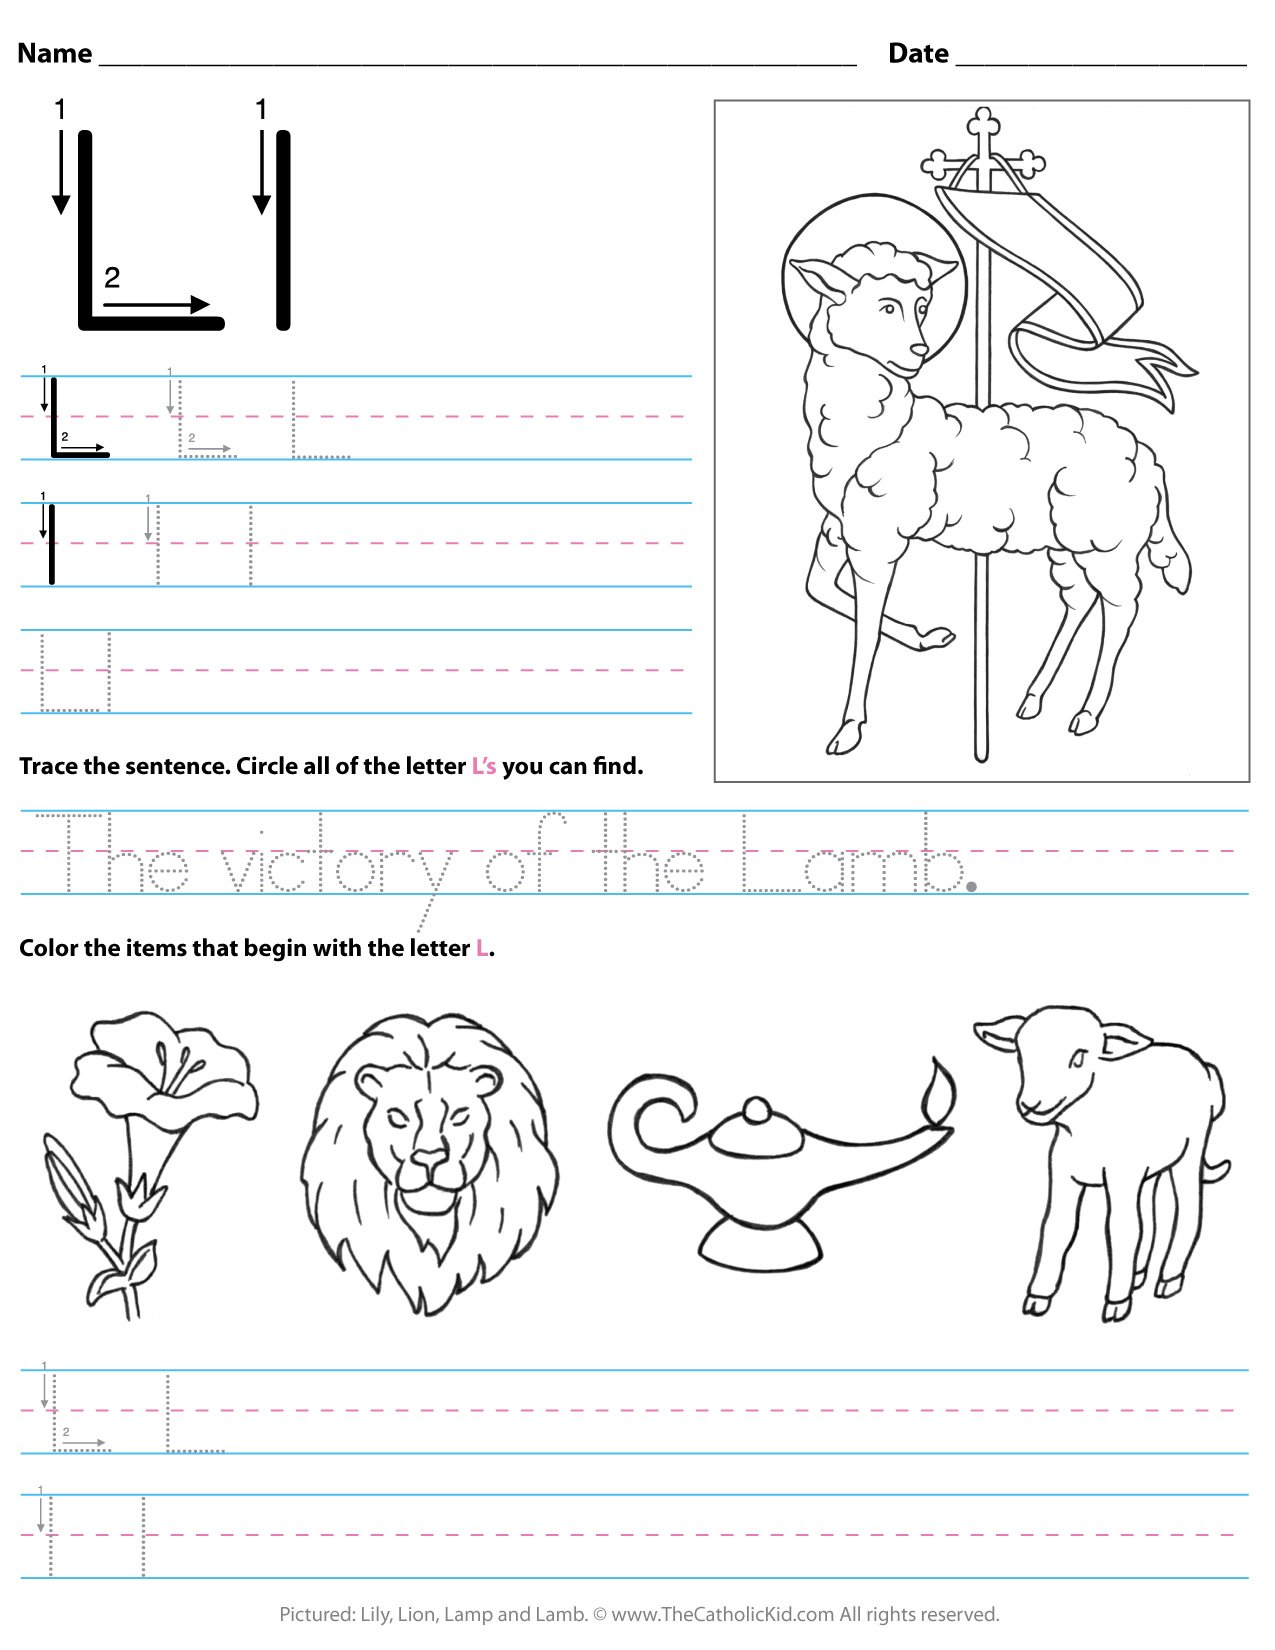 Free Lamb Coloring Sheets, Download Free Clip Art, Free Clip Art on Clipart  Library | 1650x1275